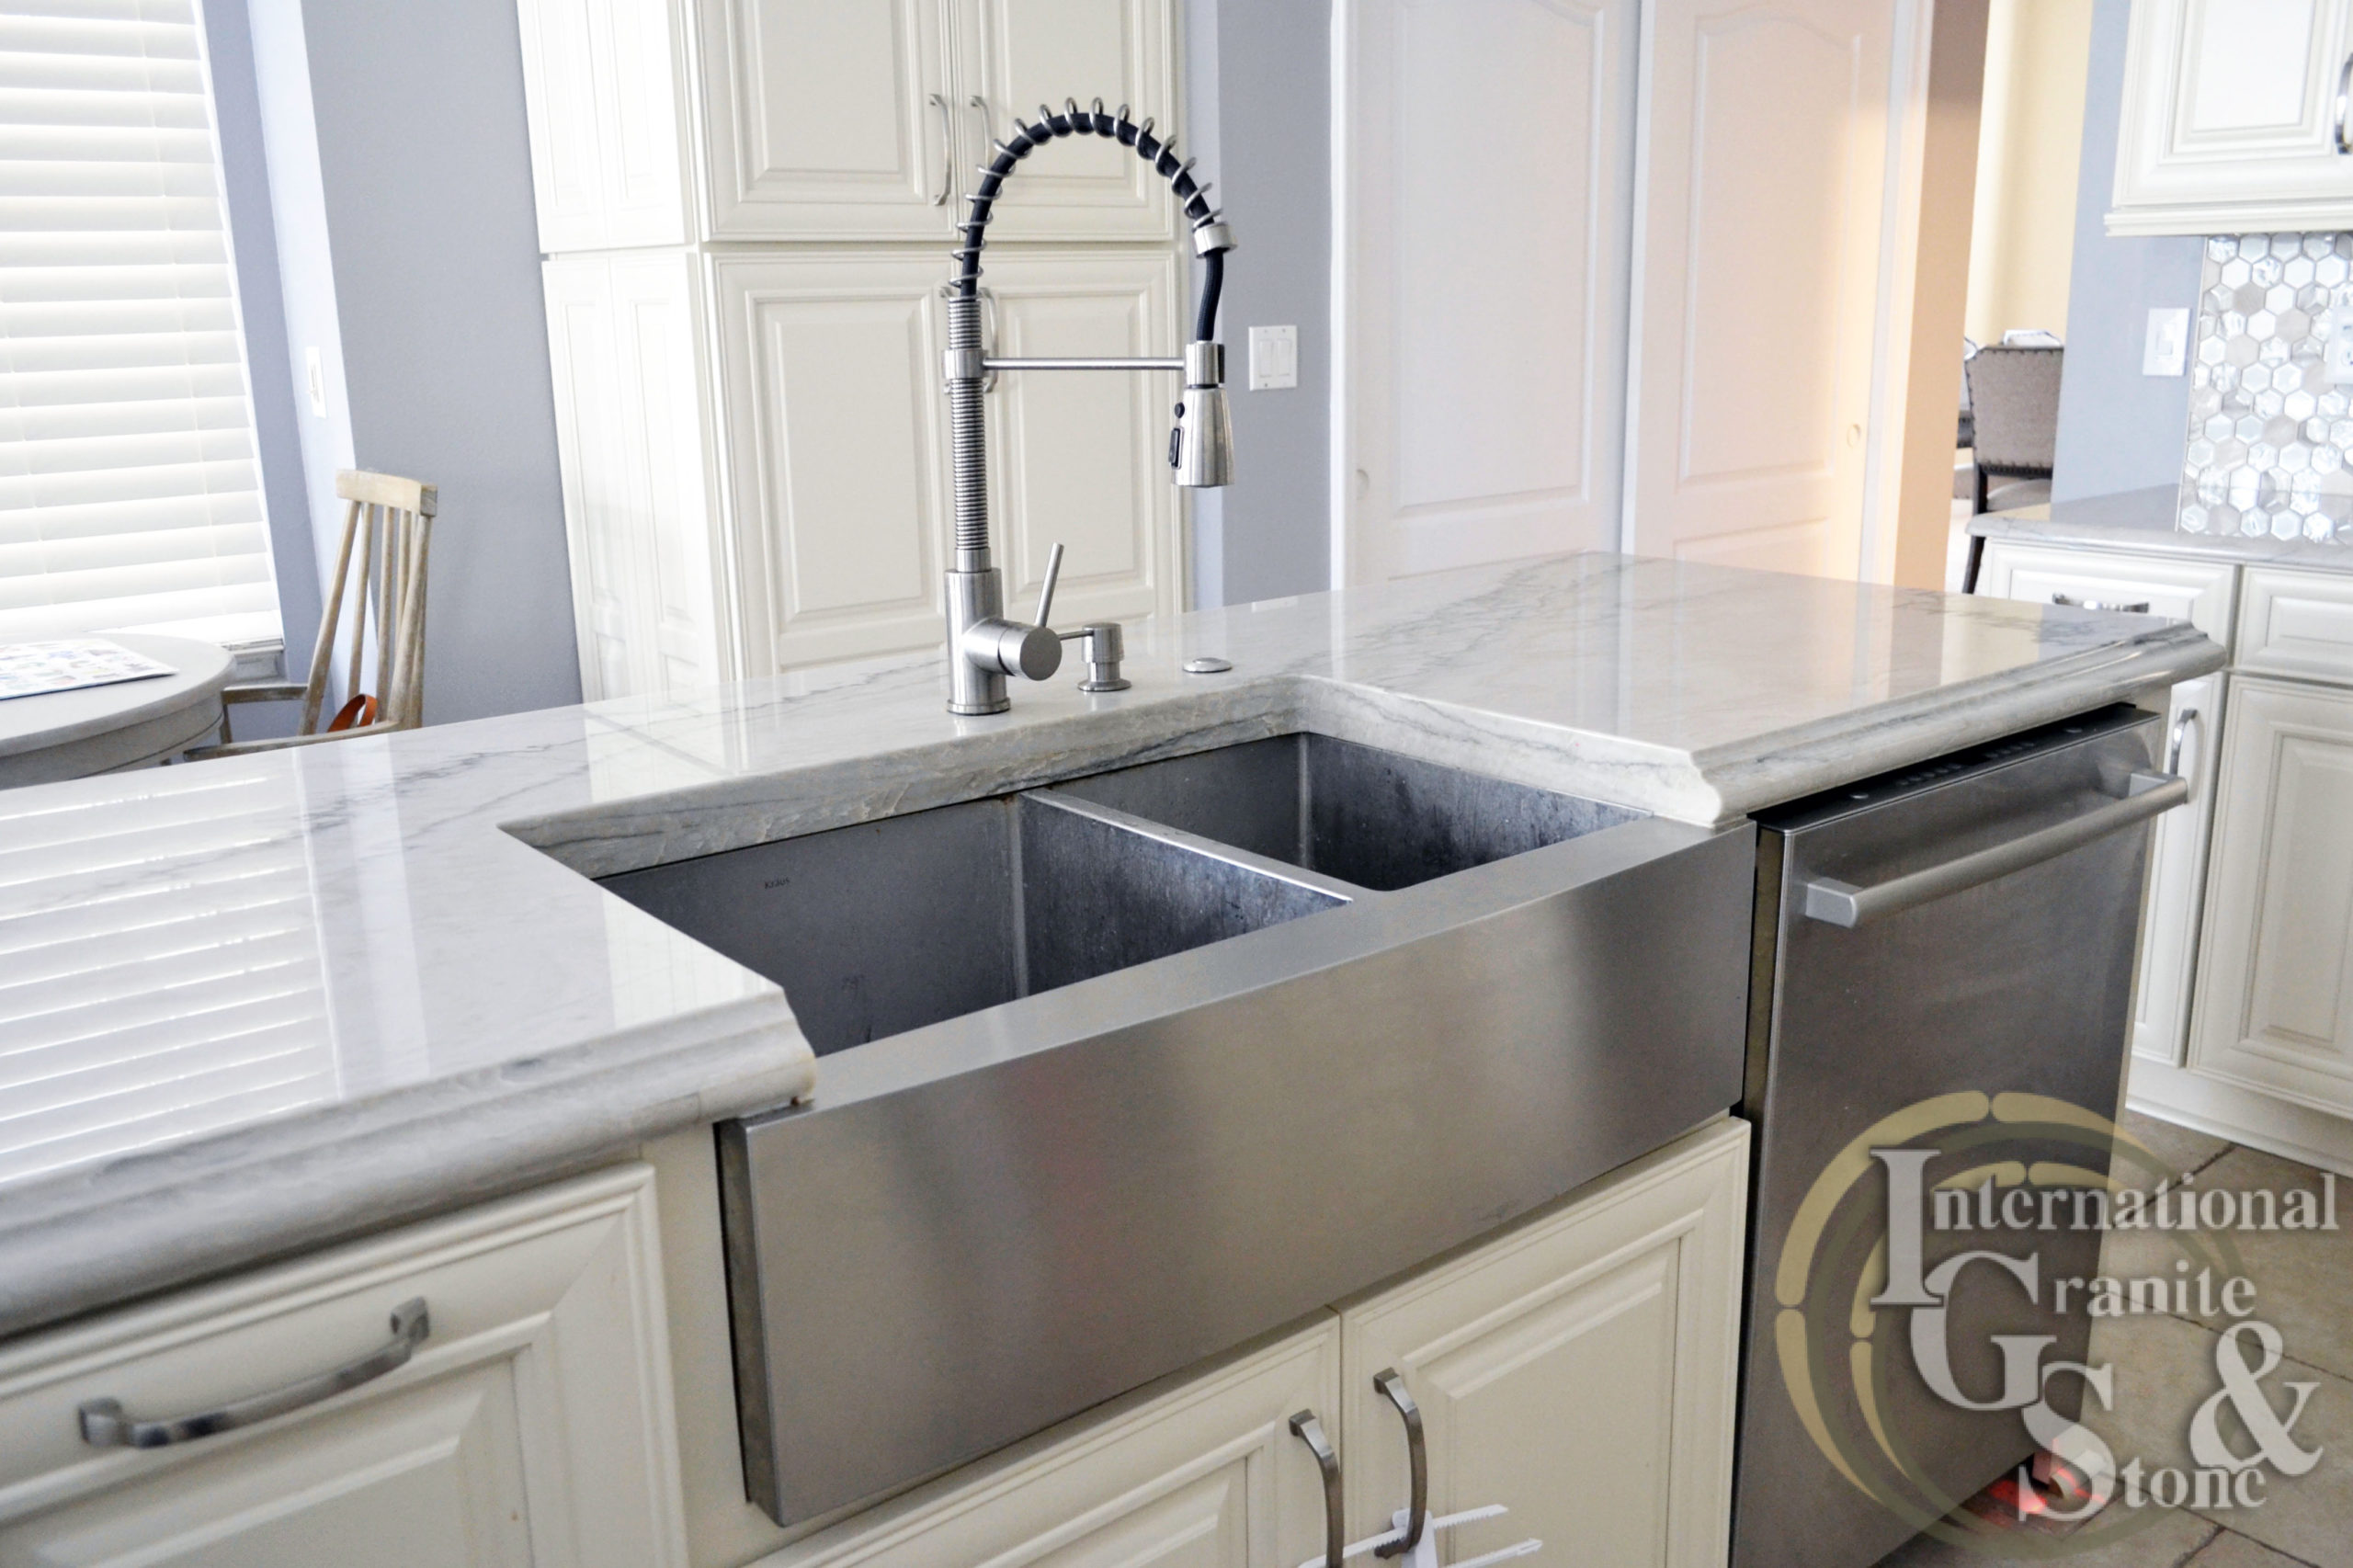 Stainless Steel Apron Front Kitchen Sink with Quartzite